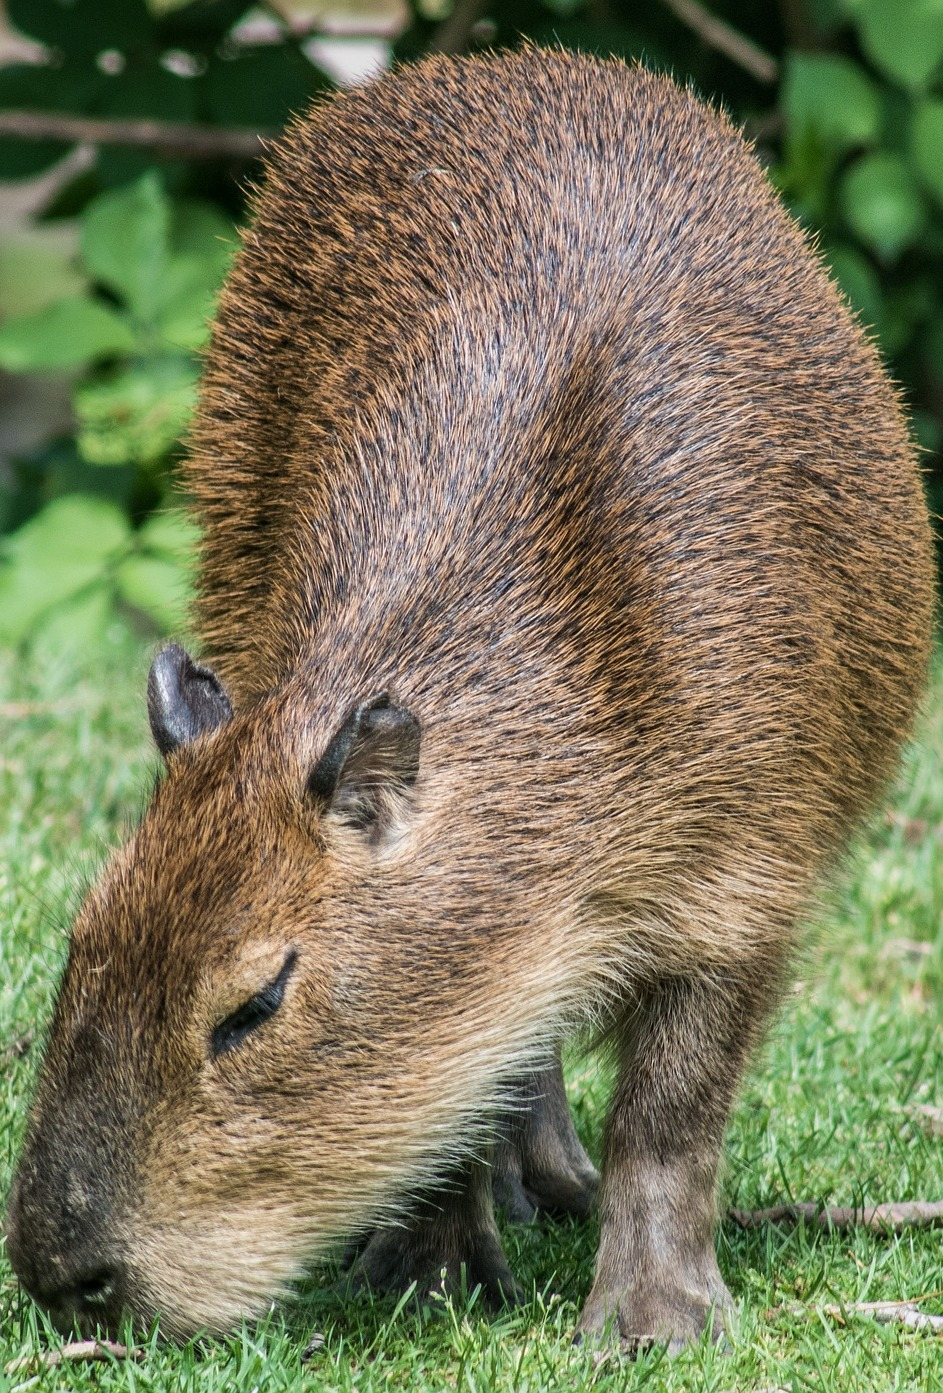 A capybara eating grass.